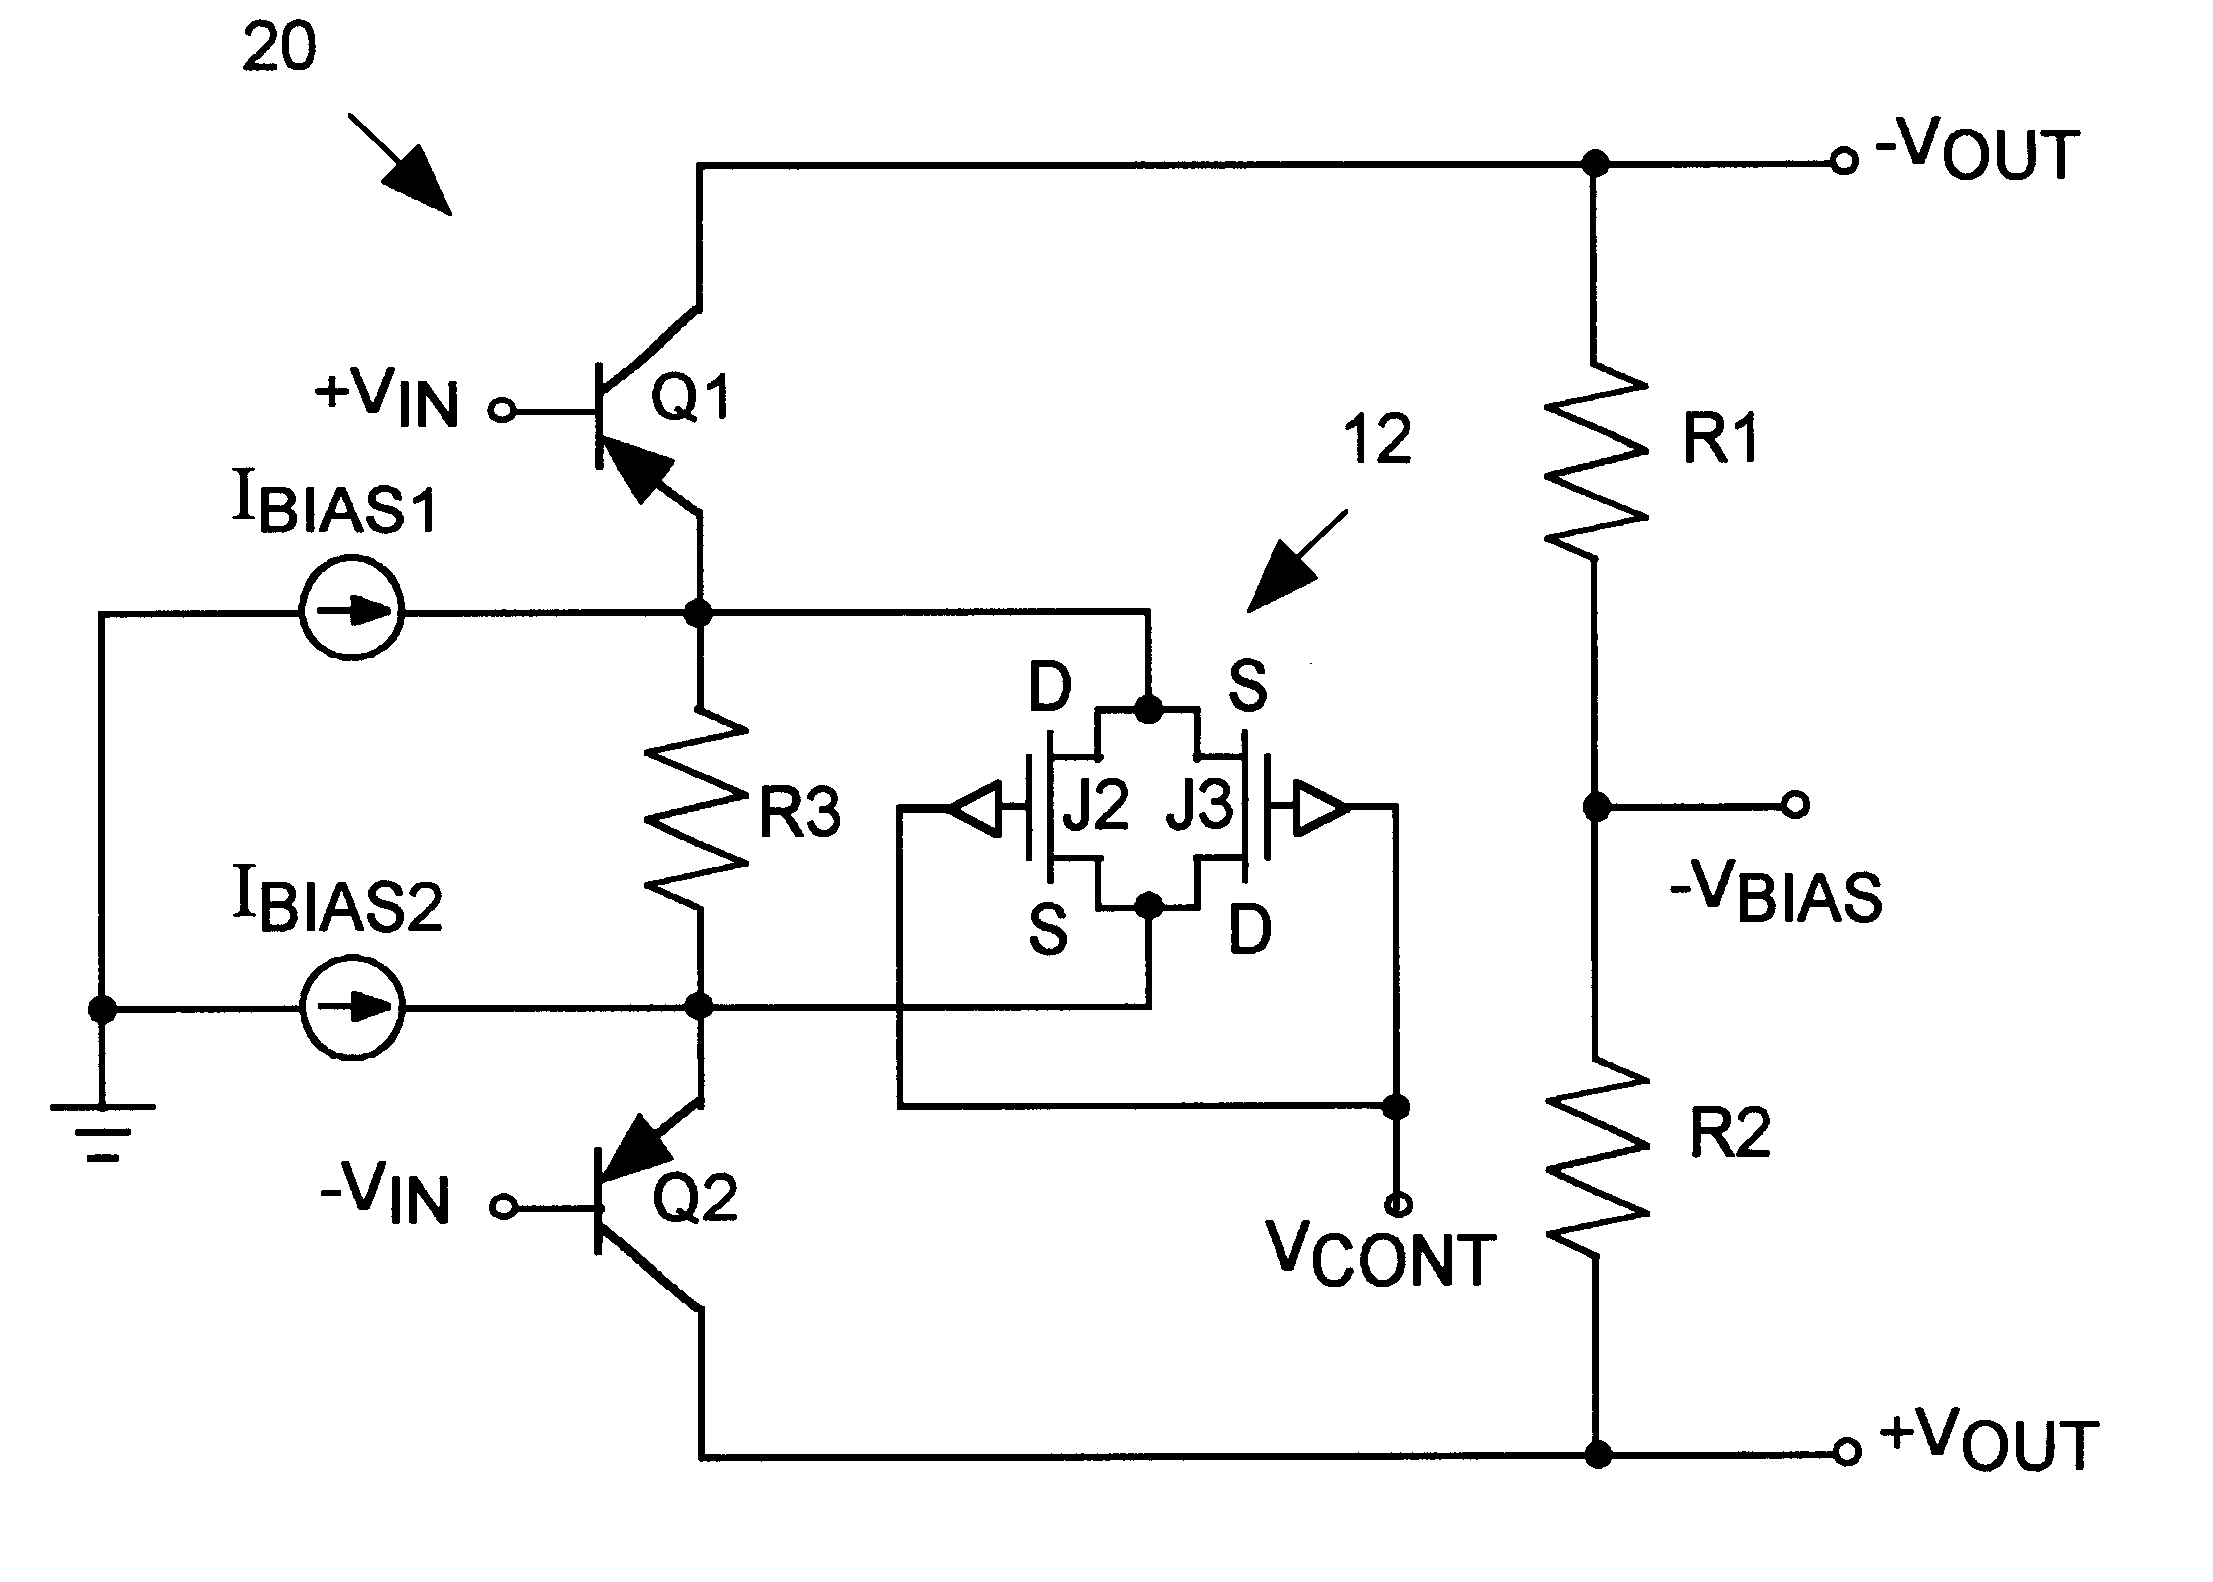 how to find current from a circuit with 4 resistors